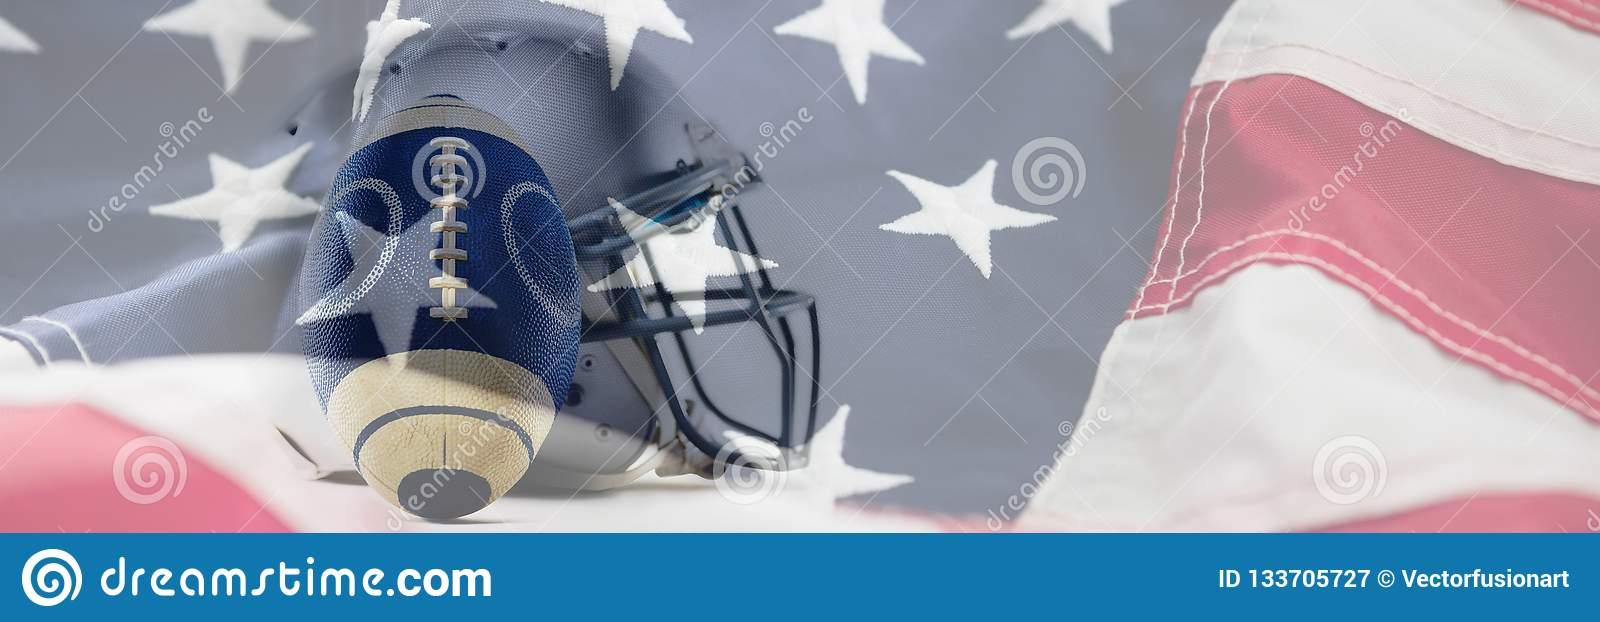 Composite image of close-up of sports helmet and football